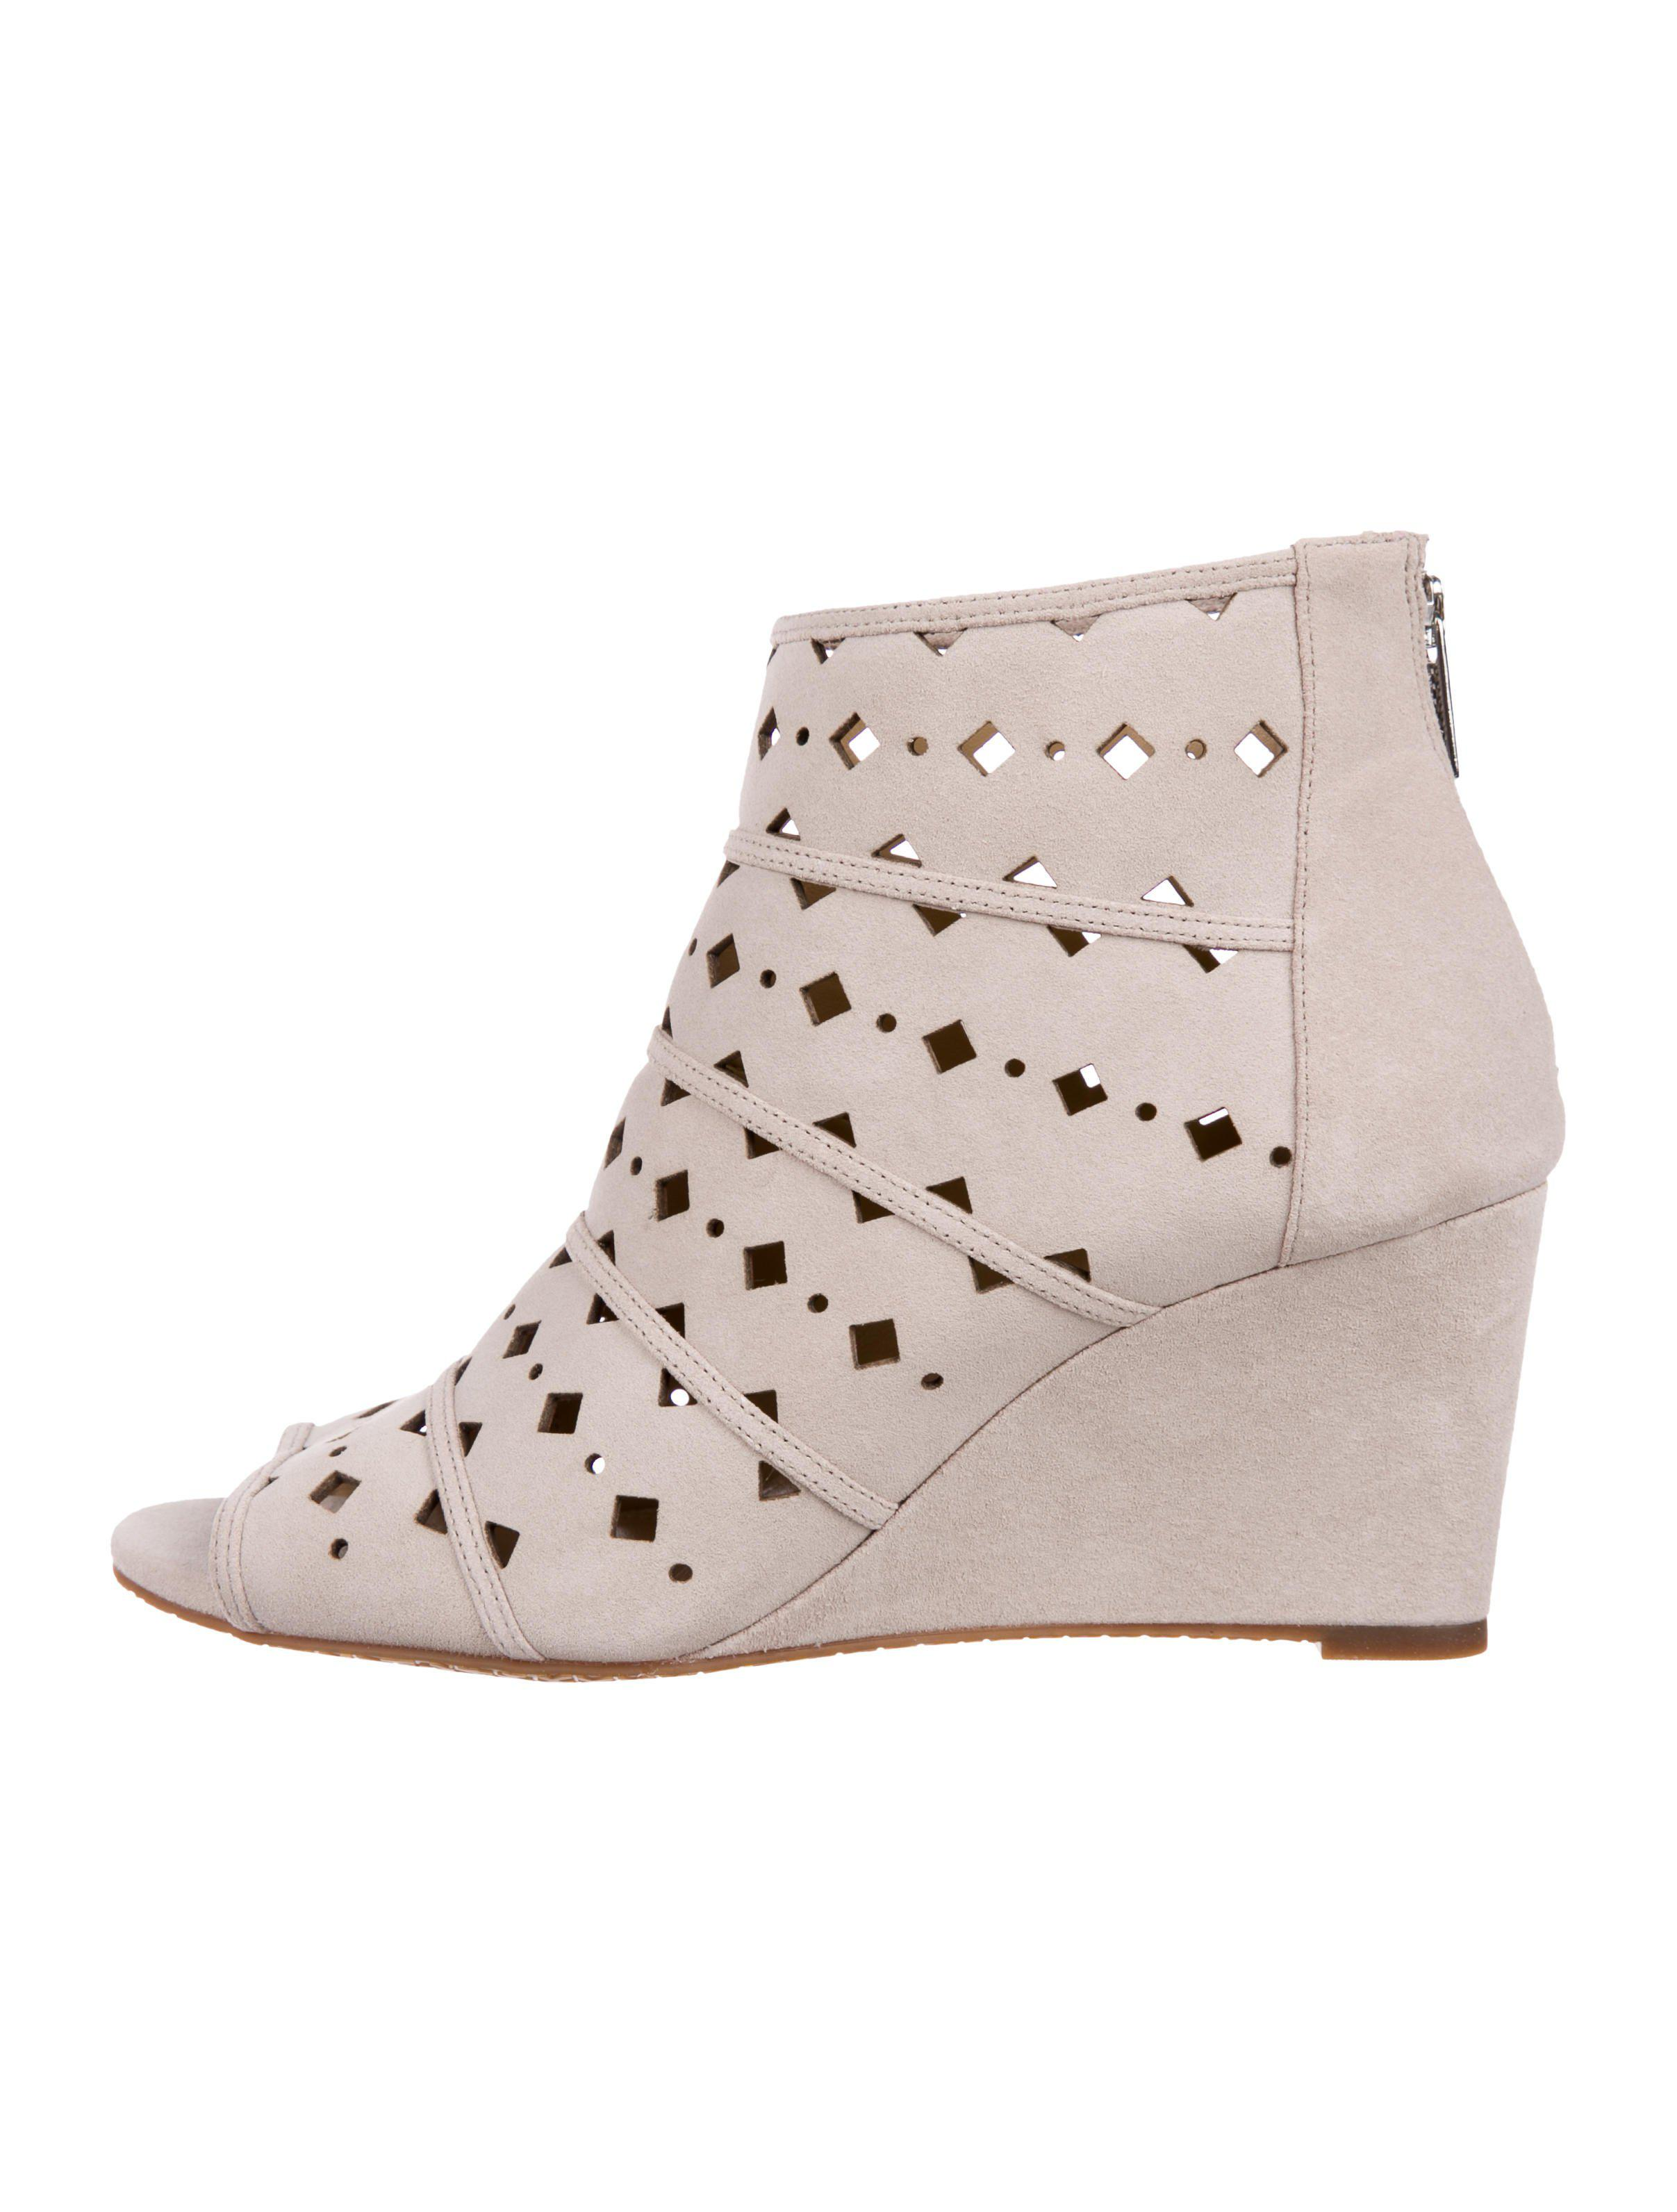 7b54146553a7 Lyst - Michael Kors Uma Suede Wedges in Gray